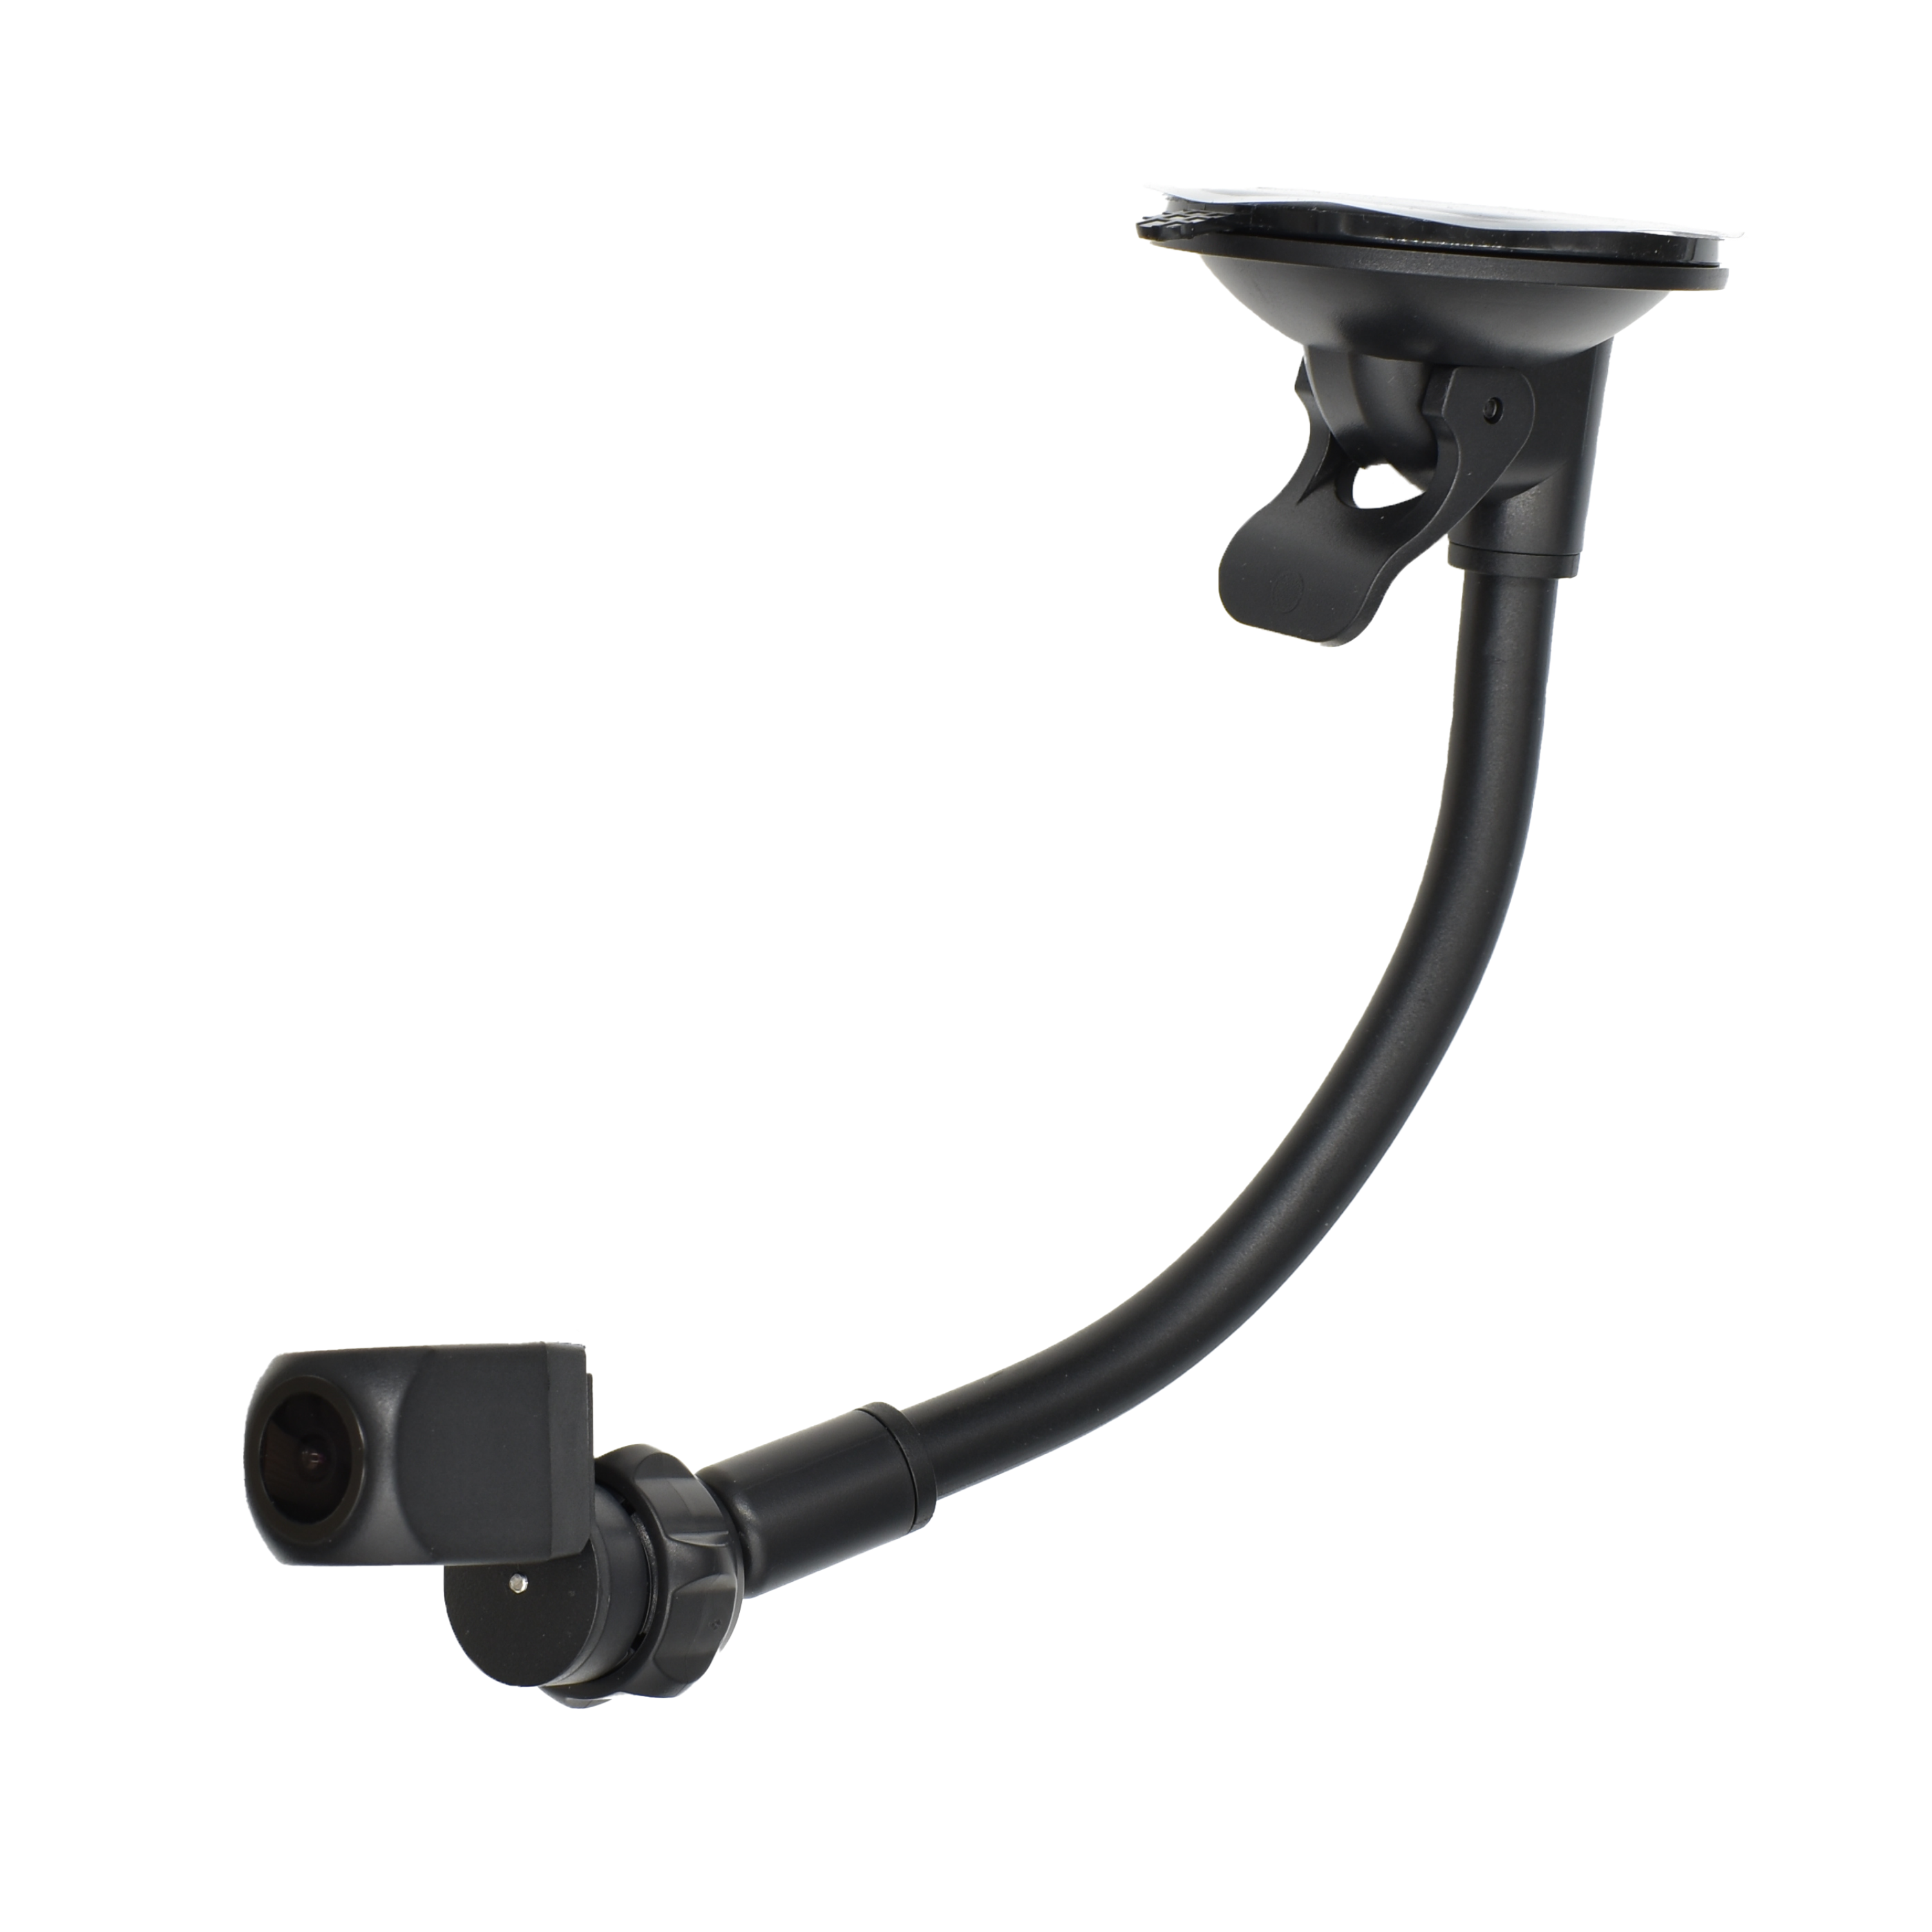 M3 windshield mount with camera